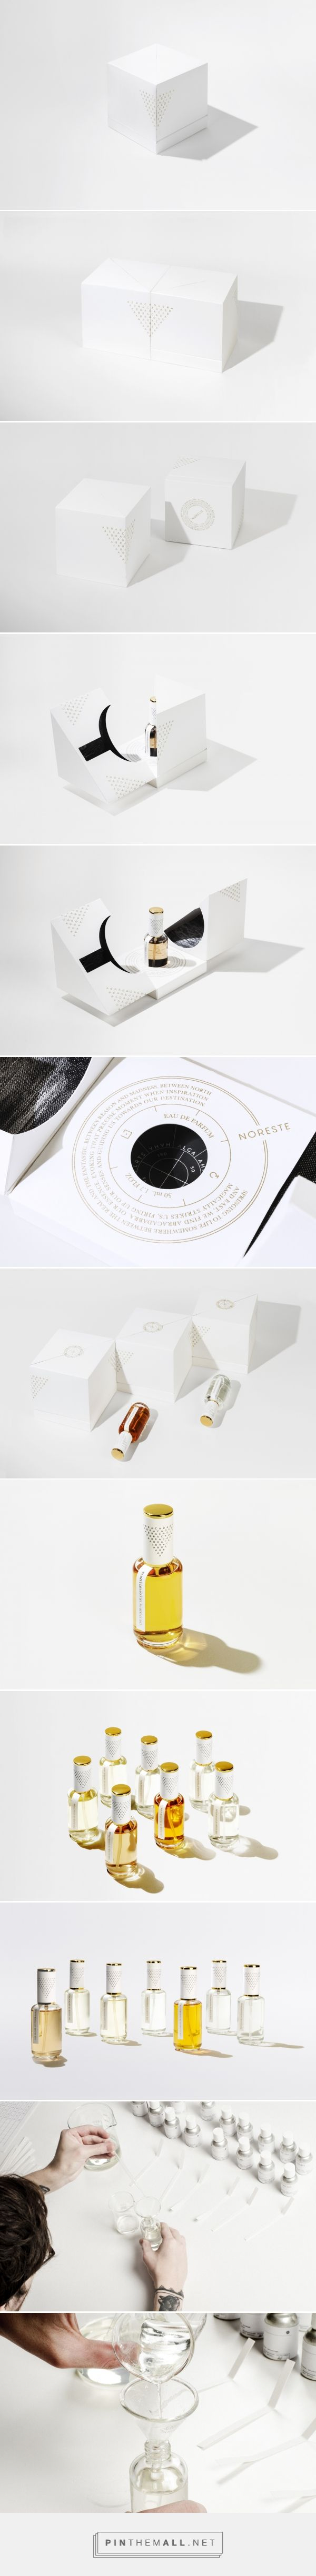 Abracadabra packaging design by Noreste - http://www.packagingoftheworld.com/2018/02/abracadabra.html